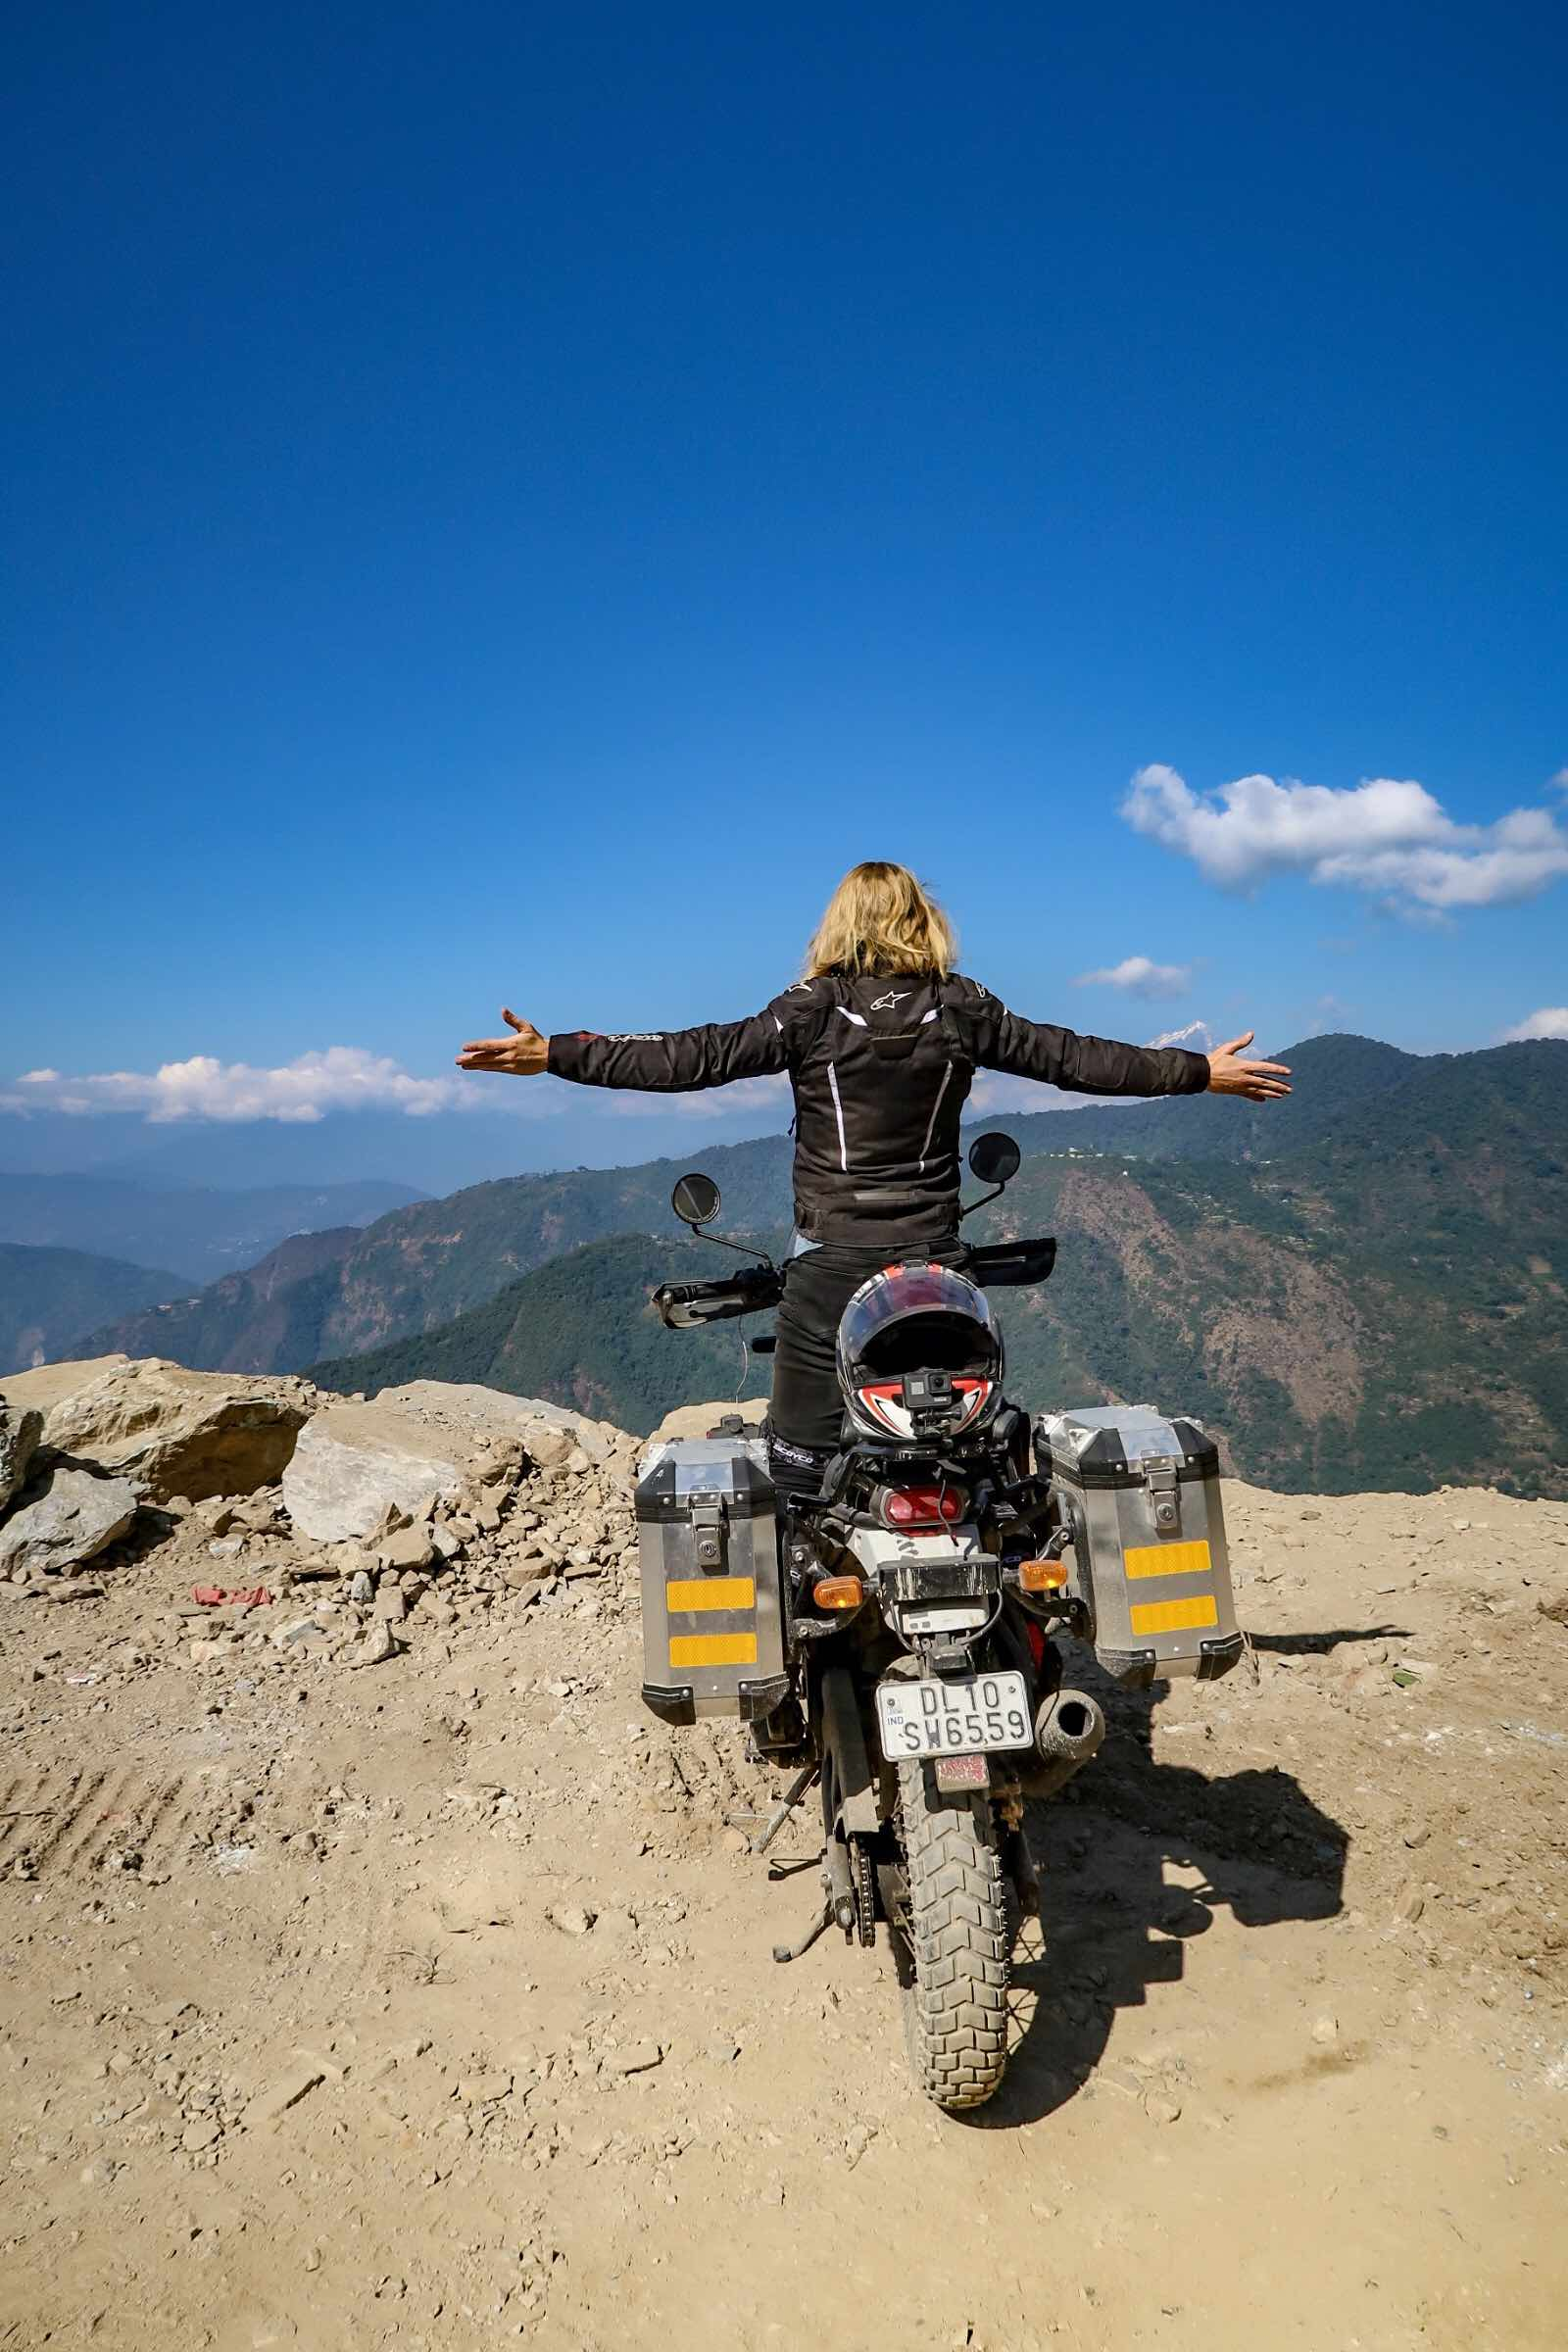 The view from my Royal Enfield Himalayan ABS (2018) in Sikkim, India.